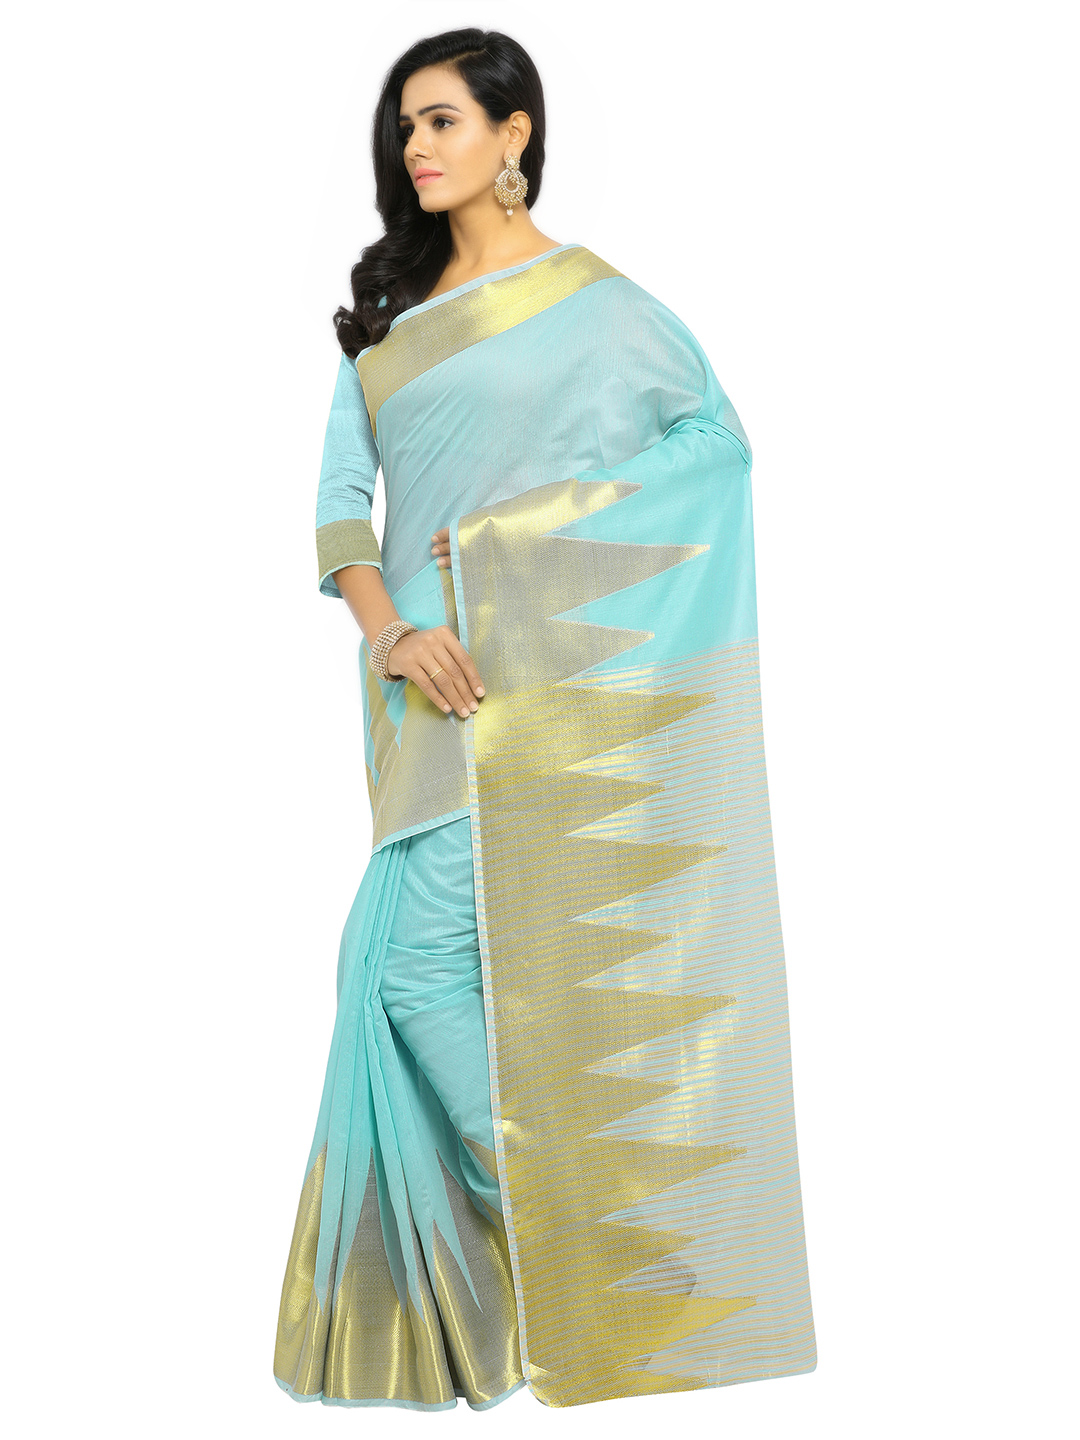 Sky Blue Festive Wear Banarsi Cotton Saree